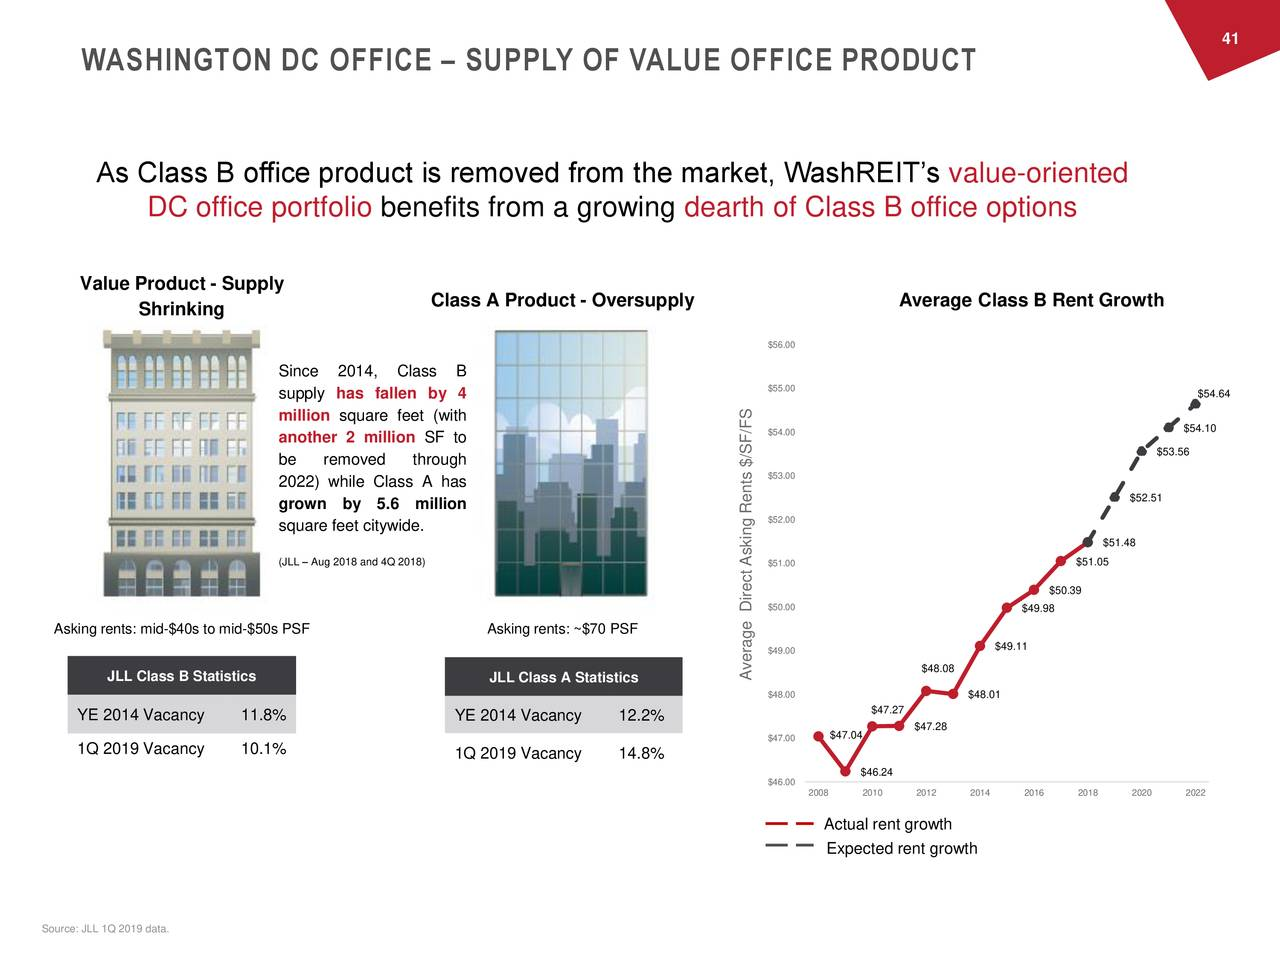 WASHINGTON DC OFFICE – SUPPLY OF VALUE OFFICE PRODUCT As Class B office product is removed from the market, WashREIT's value-oriented DC office portfolio benefits from a growing dearth of Class B office options Value Product - Supply Class A Product - Oversupply Average Class B Rent Growth Shrinking $56.00 Since 2014, Class B $55.00 supply has fallen by 4 $54.64 million square feet (with $54.10 another 2 million SF to $54.00 $53.56 be removed through $53.00 2022) while Class A has grown by 5.6 million $52.51 $52.00 square feet citywide. $51.48 (JLL – Aug 2018 and 4Q 2018) $51.00 $51.05 $50.39 $50.00 $49.98 Asking rents: mid-$40s to mid-$50s PSF Asking rents: ~$70 PSF $49.00 $49.11 $48.08 JLL Class B Statistics JLL Class A Statistics Average Direct Asking Rents $/SF/FS $48.00 $48.01 $47.27 YE 2014 Vacancy 11.8% YE 2014 Vacancy 12.2% $47.04 $47.28 $47.00 1Q 2019 Vacancy 10.1% 1Q 2019 Vacancy 14.8% $46.24 $46.00 2008 2010 2012 2014 2016 2018 2020 2022 Actual rent growth Expected rent growth Source: JLL 1Q 2019 data.